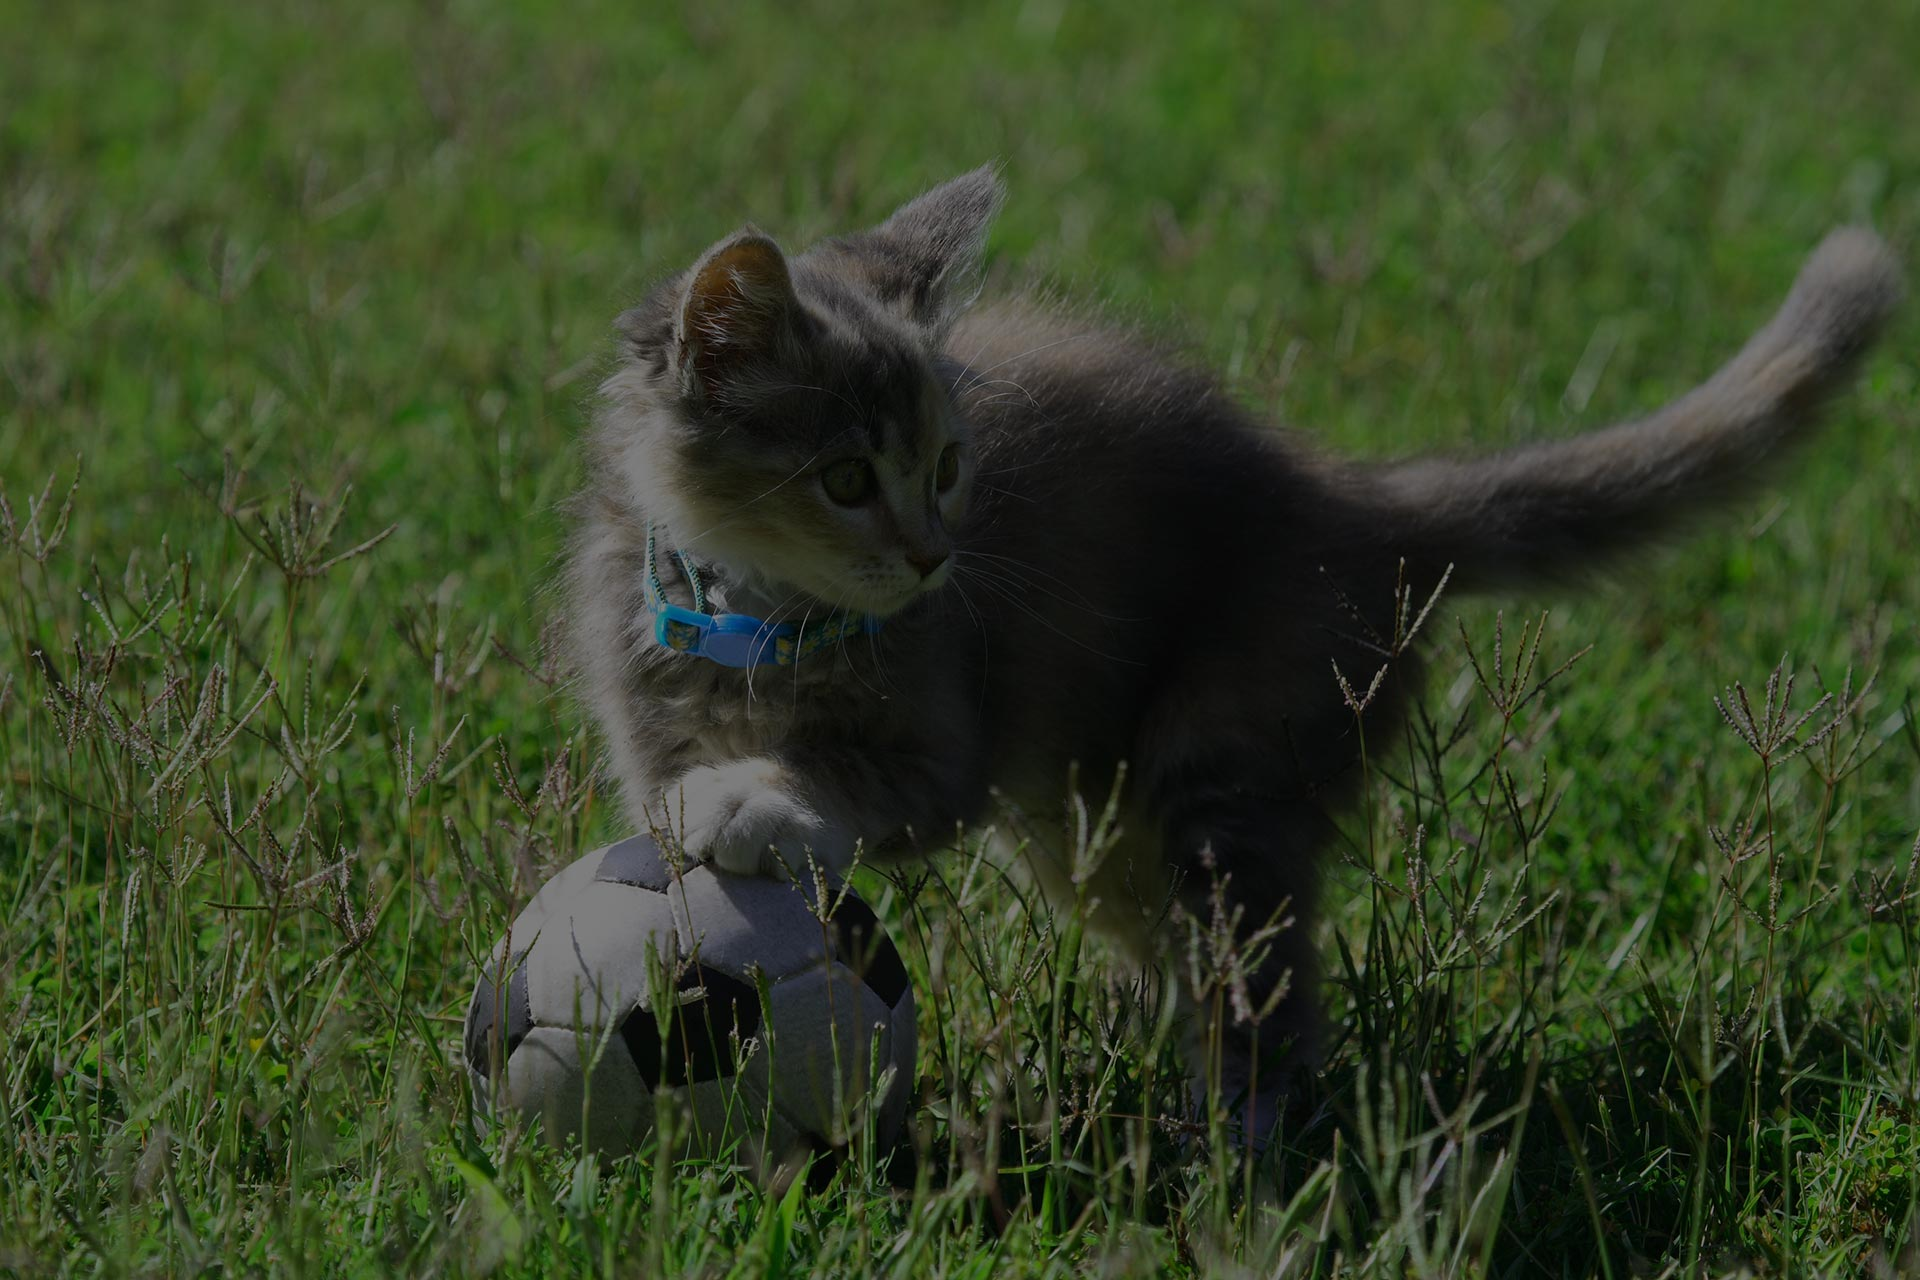 A kitten playing with a soccer ball